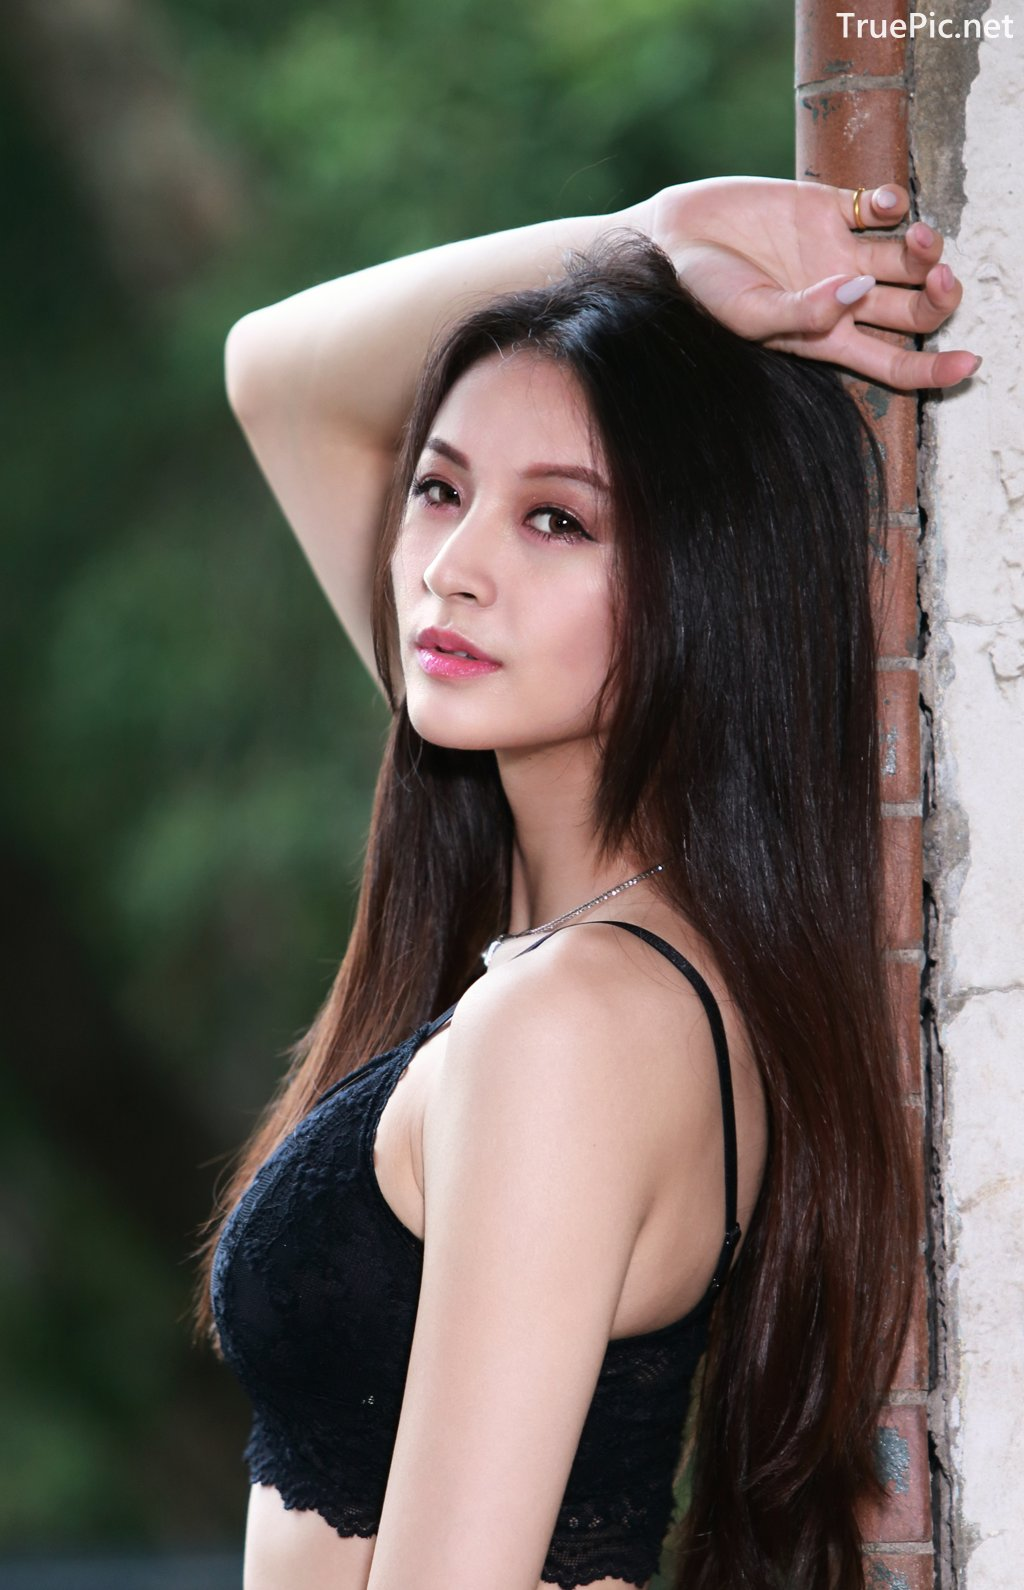 Image-Taiwanese-Beautiful-Long-Legs-Girl-雪岑Lola-Black-Sexy-Short-Pants-and-Crop-Top-Outfit-TruePic.net- Picture-20